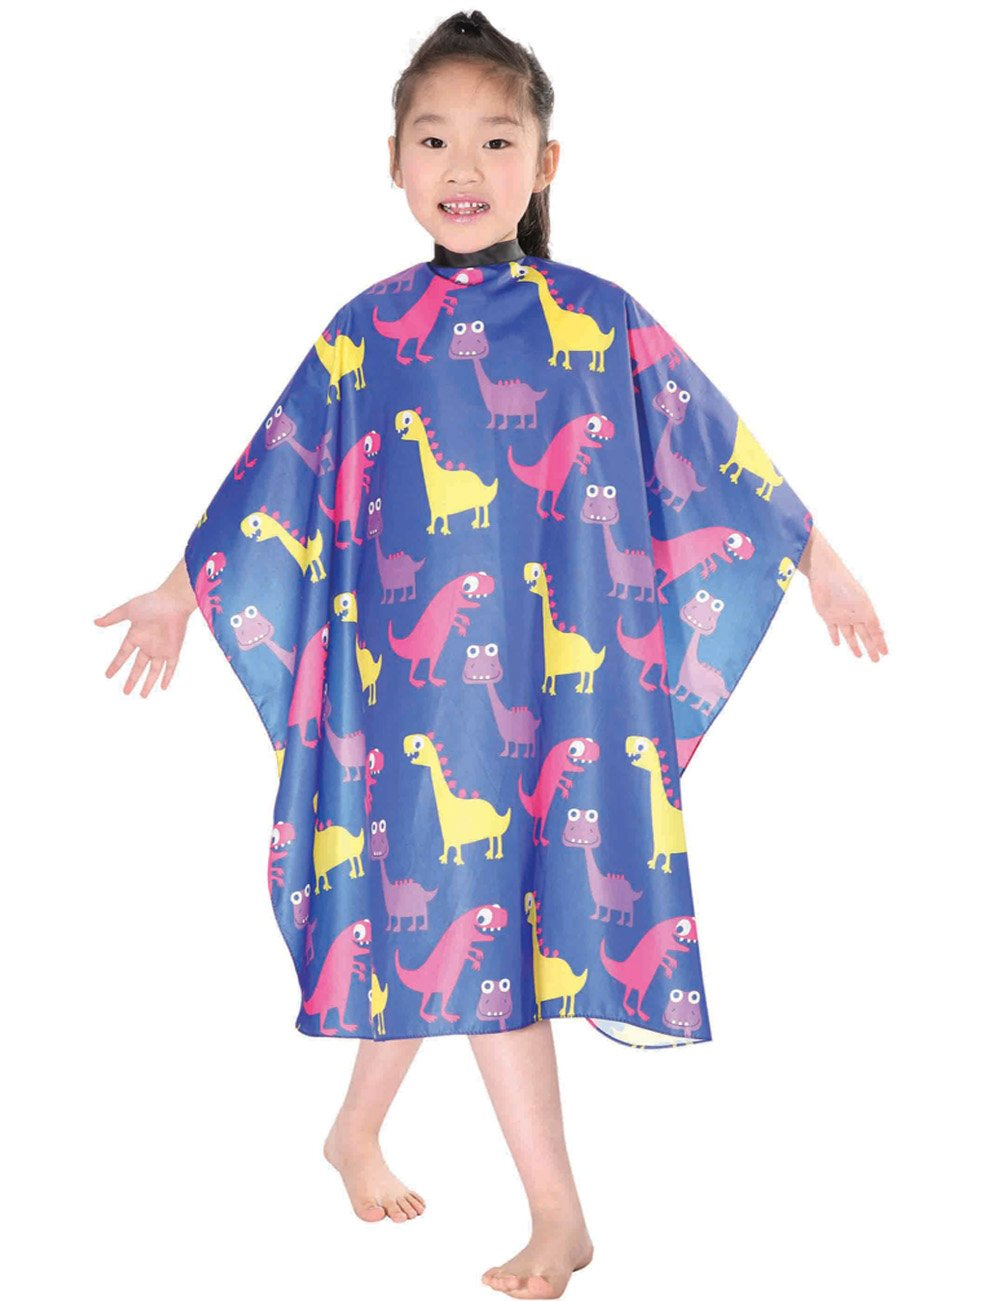 XMW Water Repellent Kid's Hair Shampoo Cape with Snaps, Blue